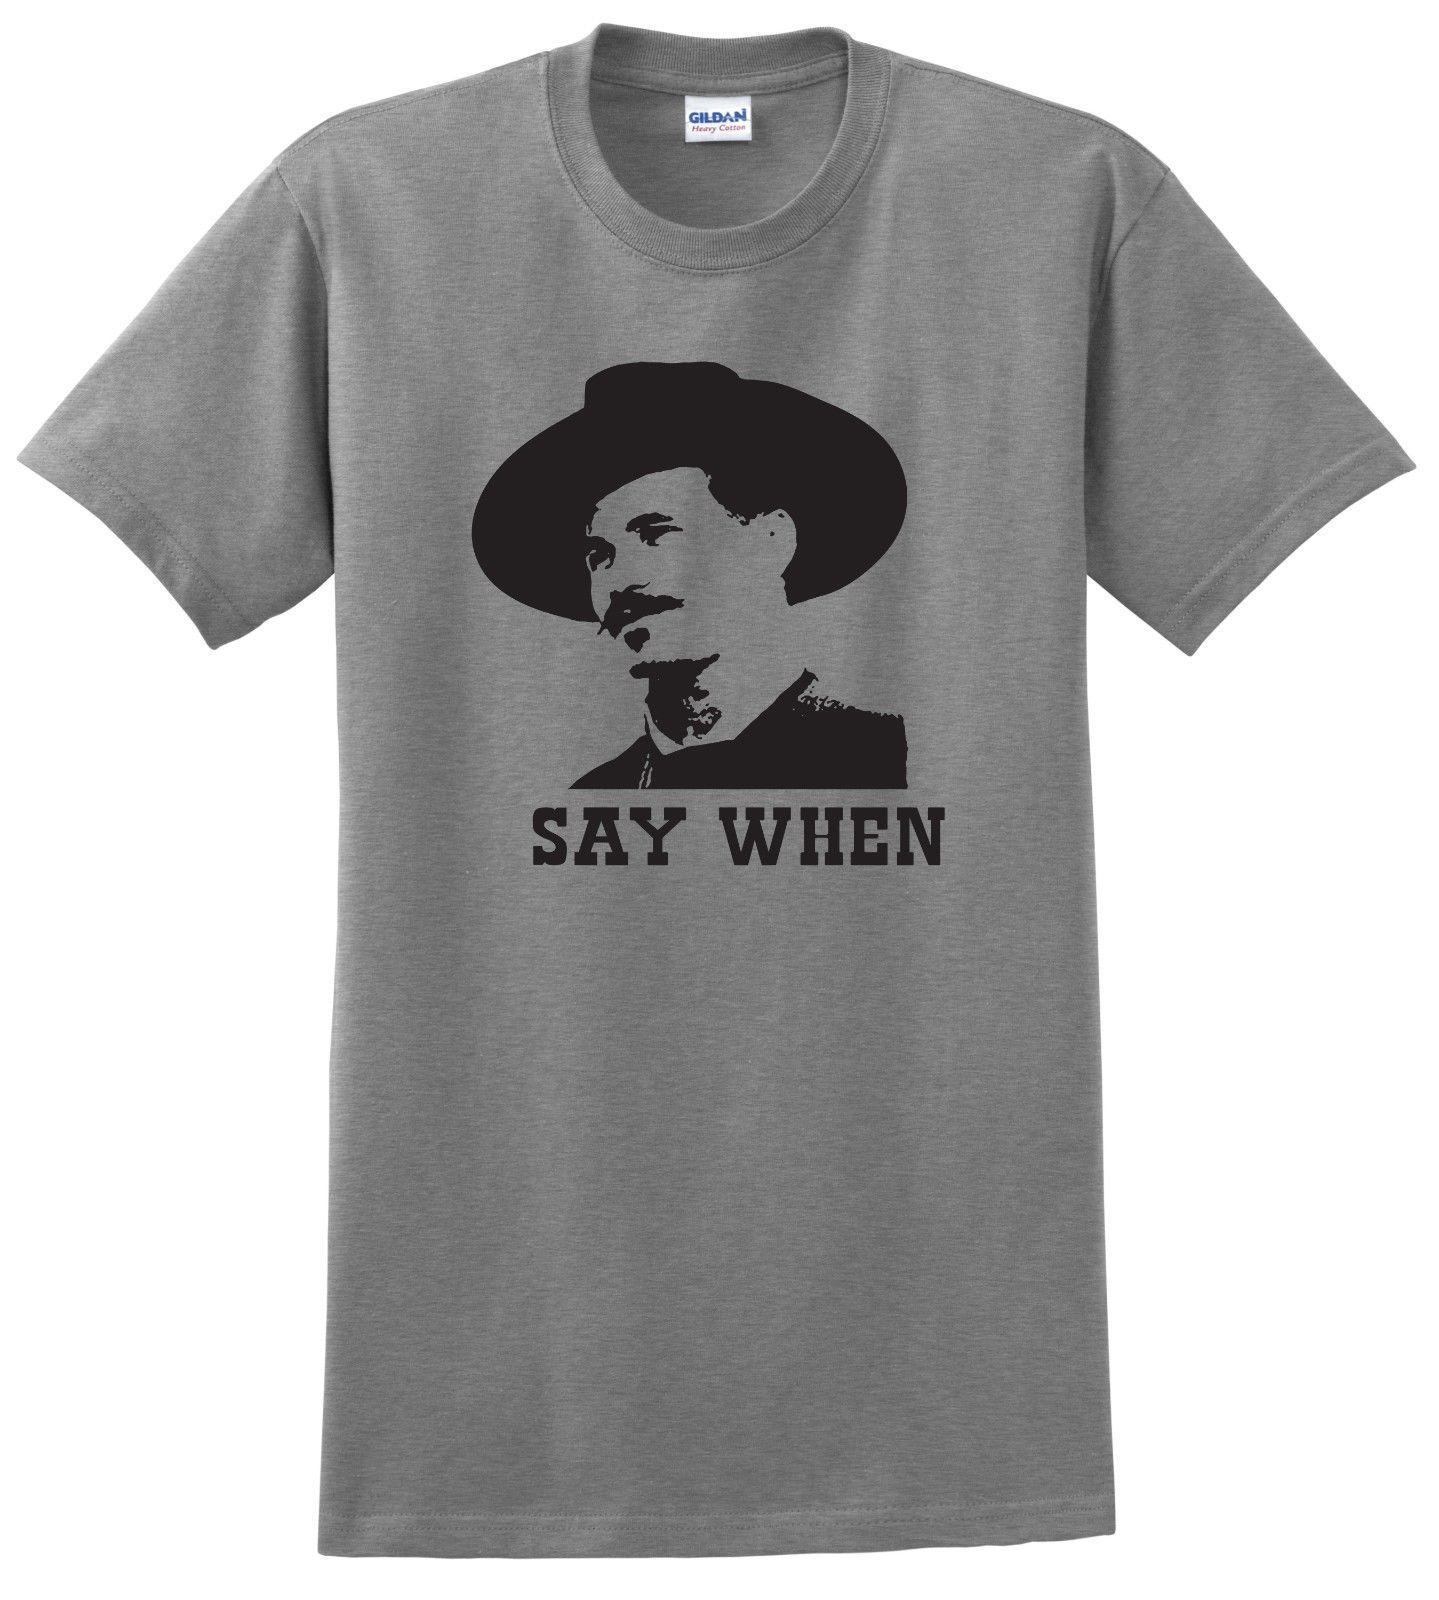 a3498ce56b3 Say When Doc Holliday Quick Draw Tombstone Val Kilmer Shirts Up To High  Quality Custom Printed Hot Cheap Men S Best Sites For T Shirts Tee Shirt  Deals From ...